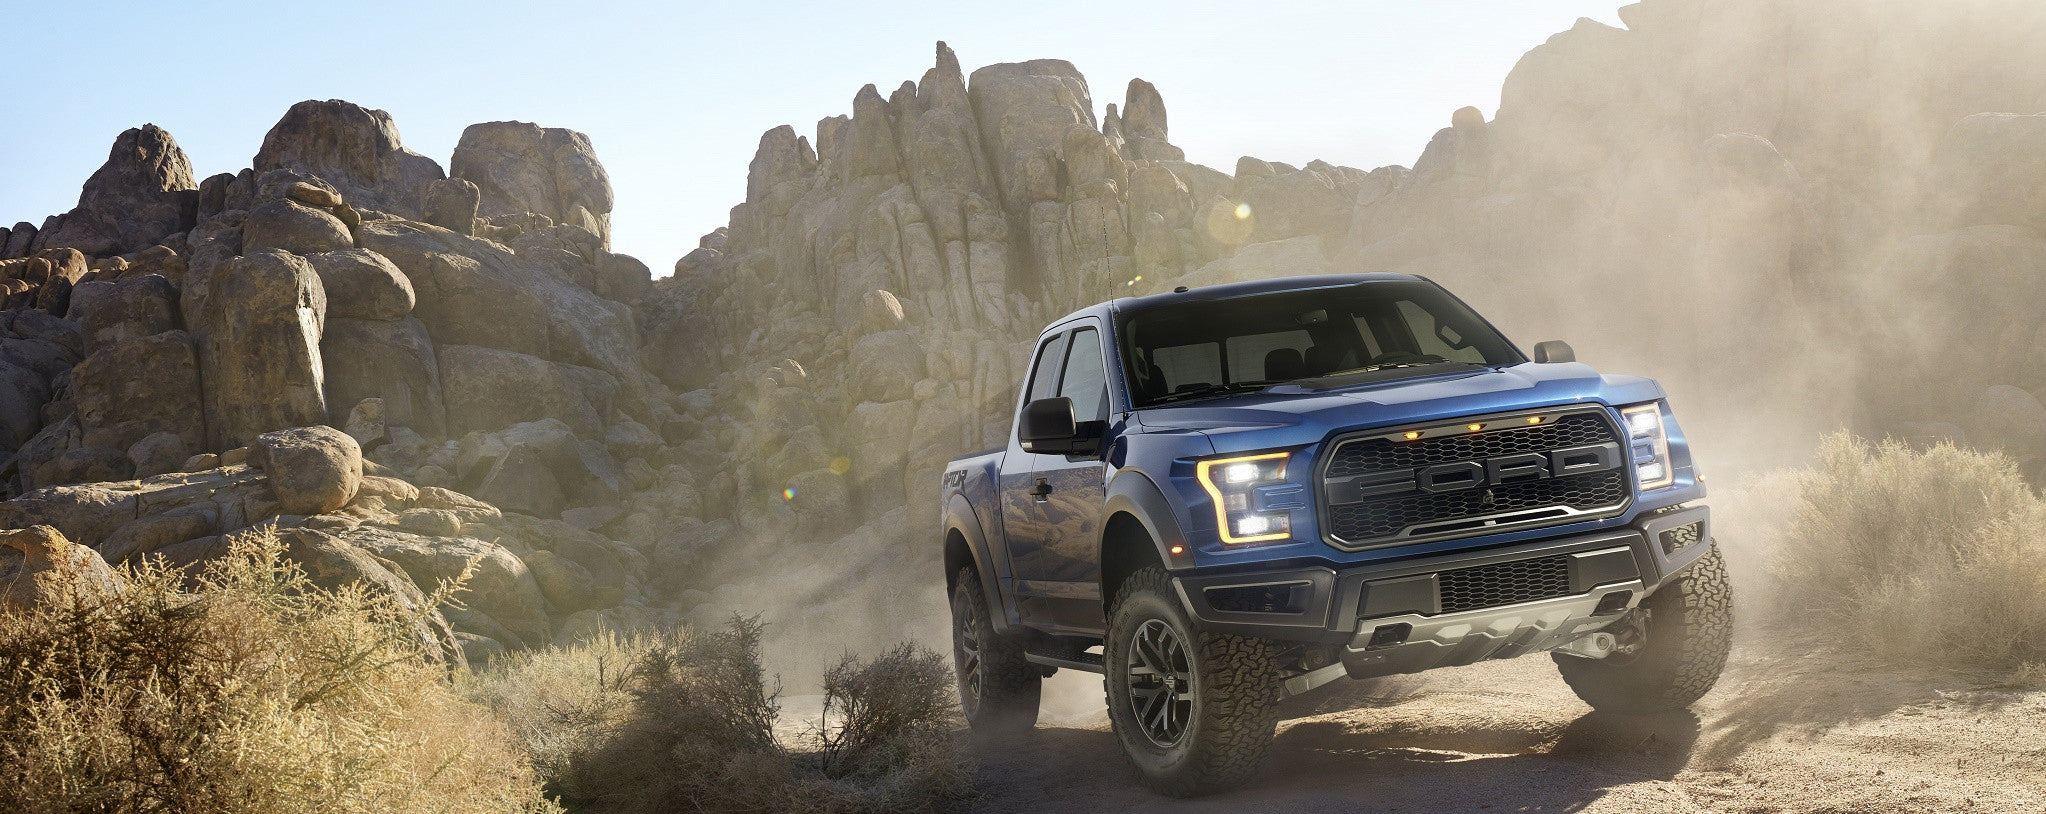 New 2017 Ford Raptor